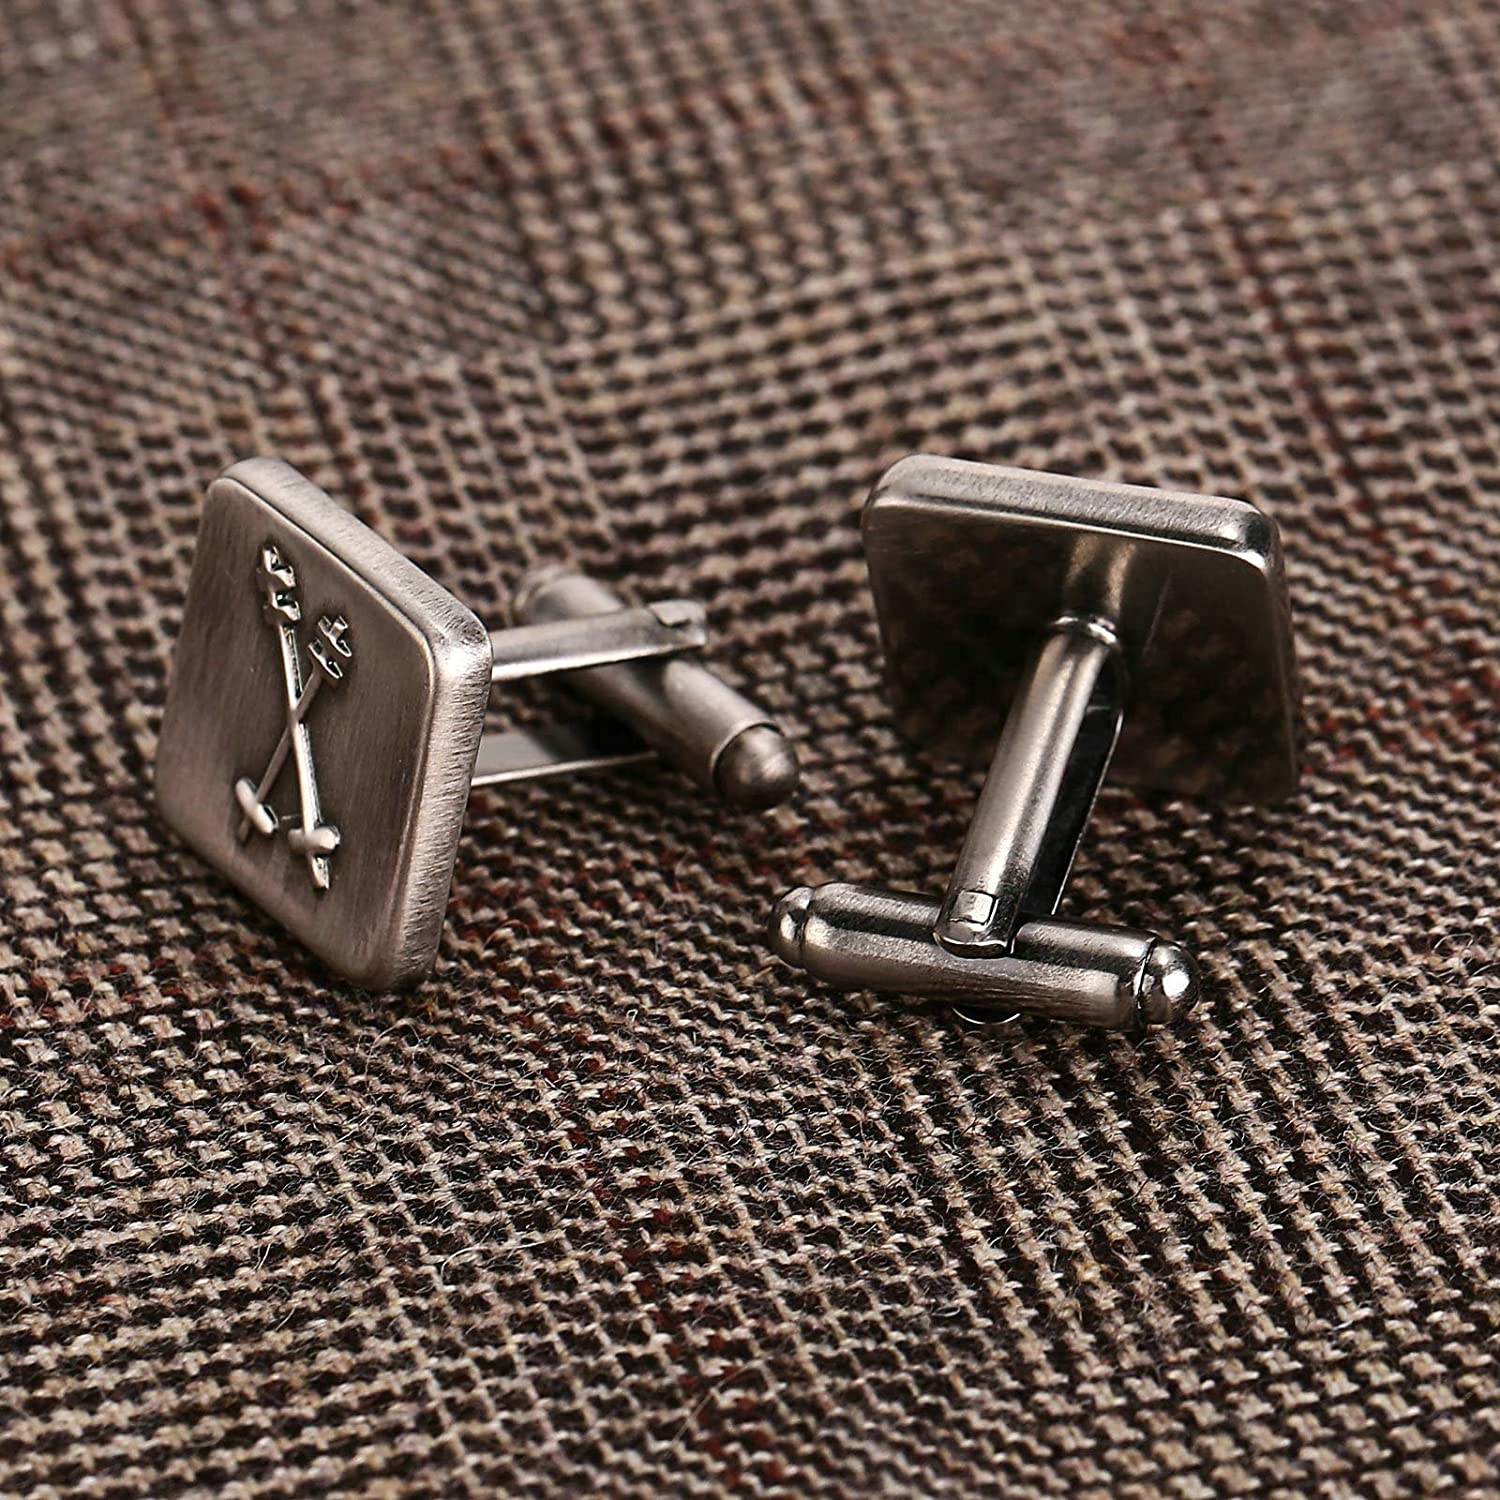 Novelty Cufflinks Dad Unique Jewelry Box Charm Mh86 Aooaz 5 Styles Mens Stainless Steel Cufflinks 2Pcs